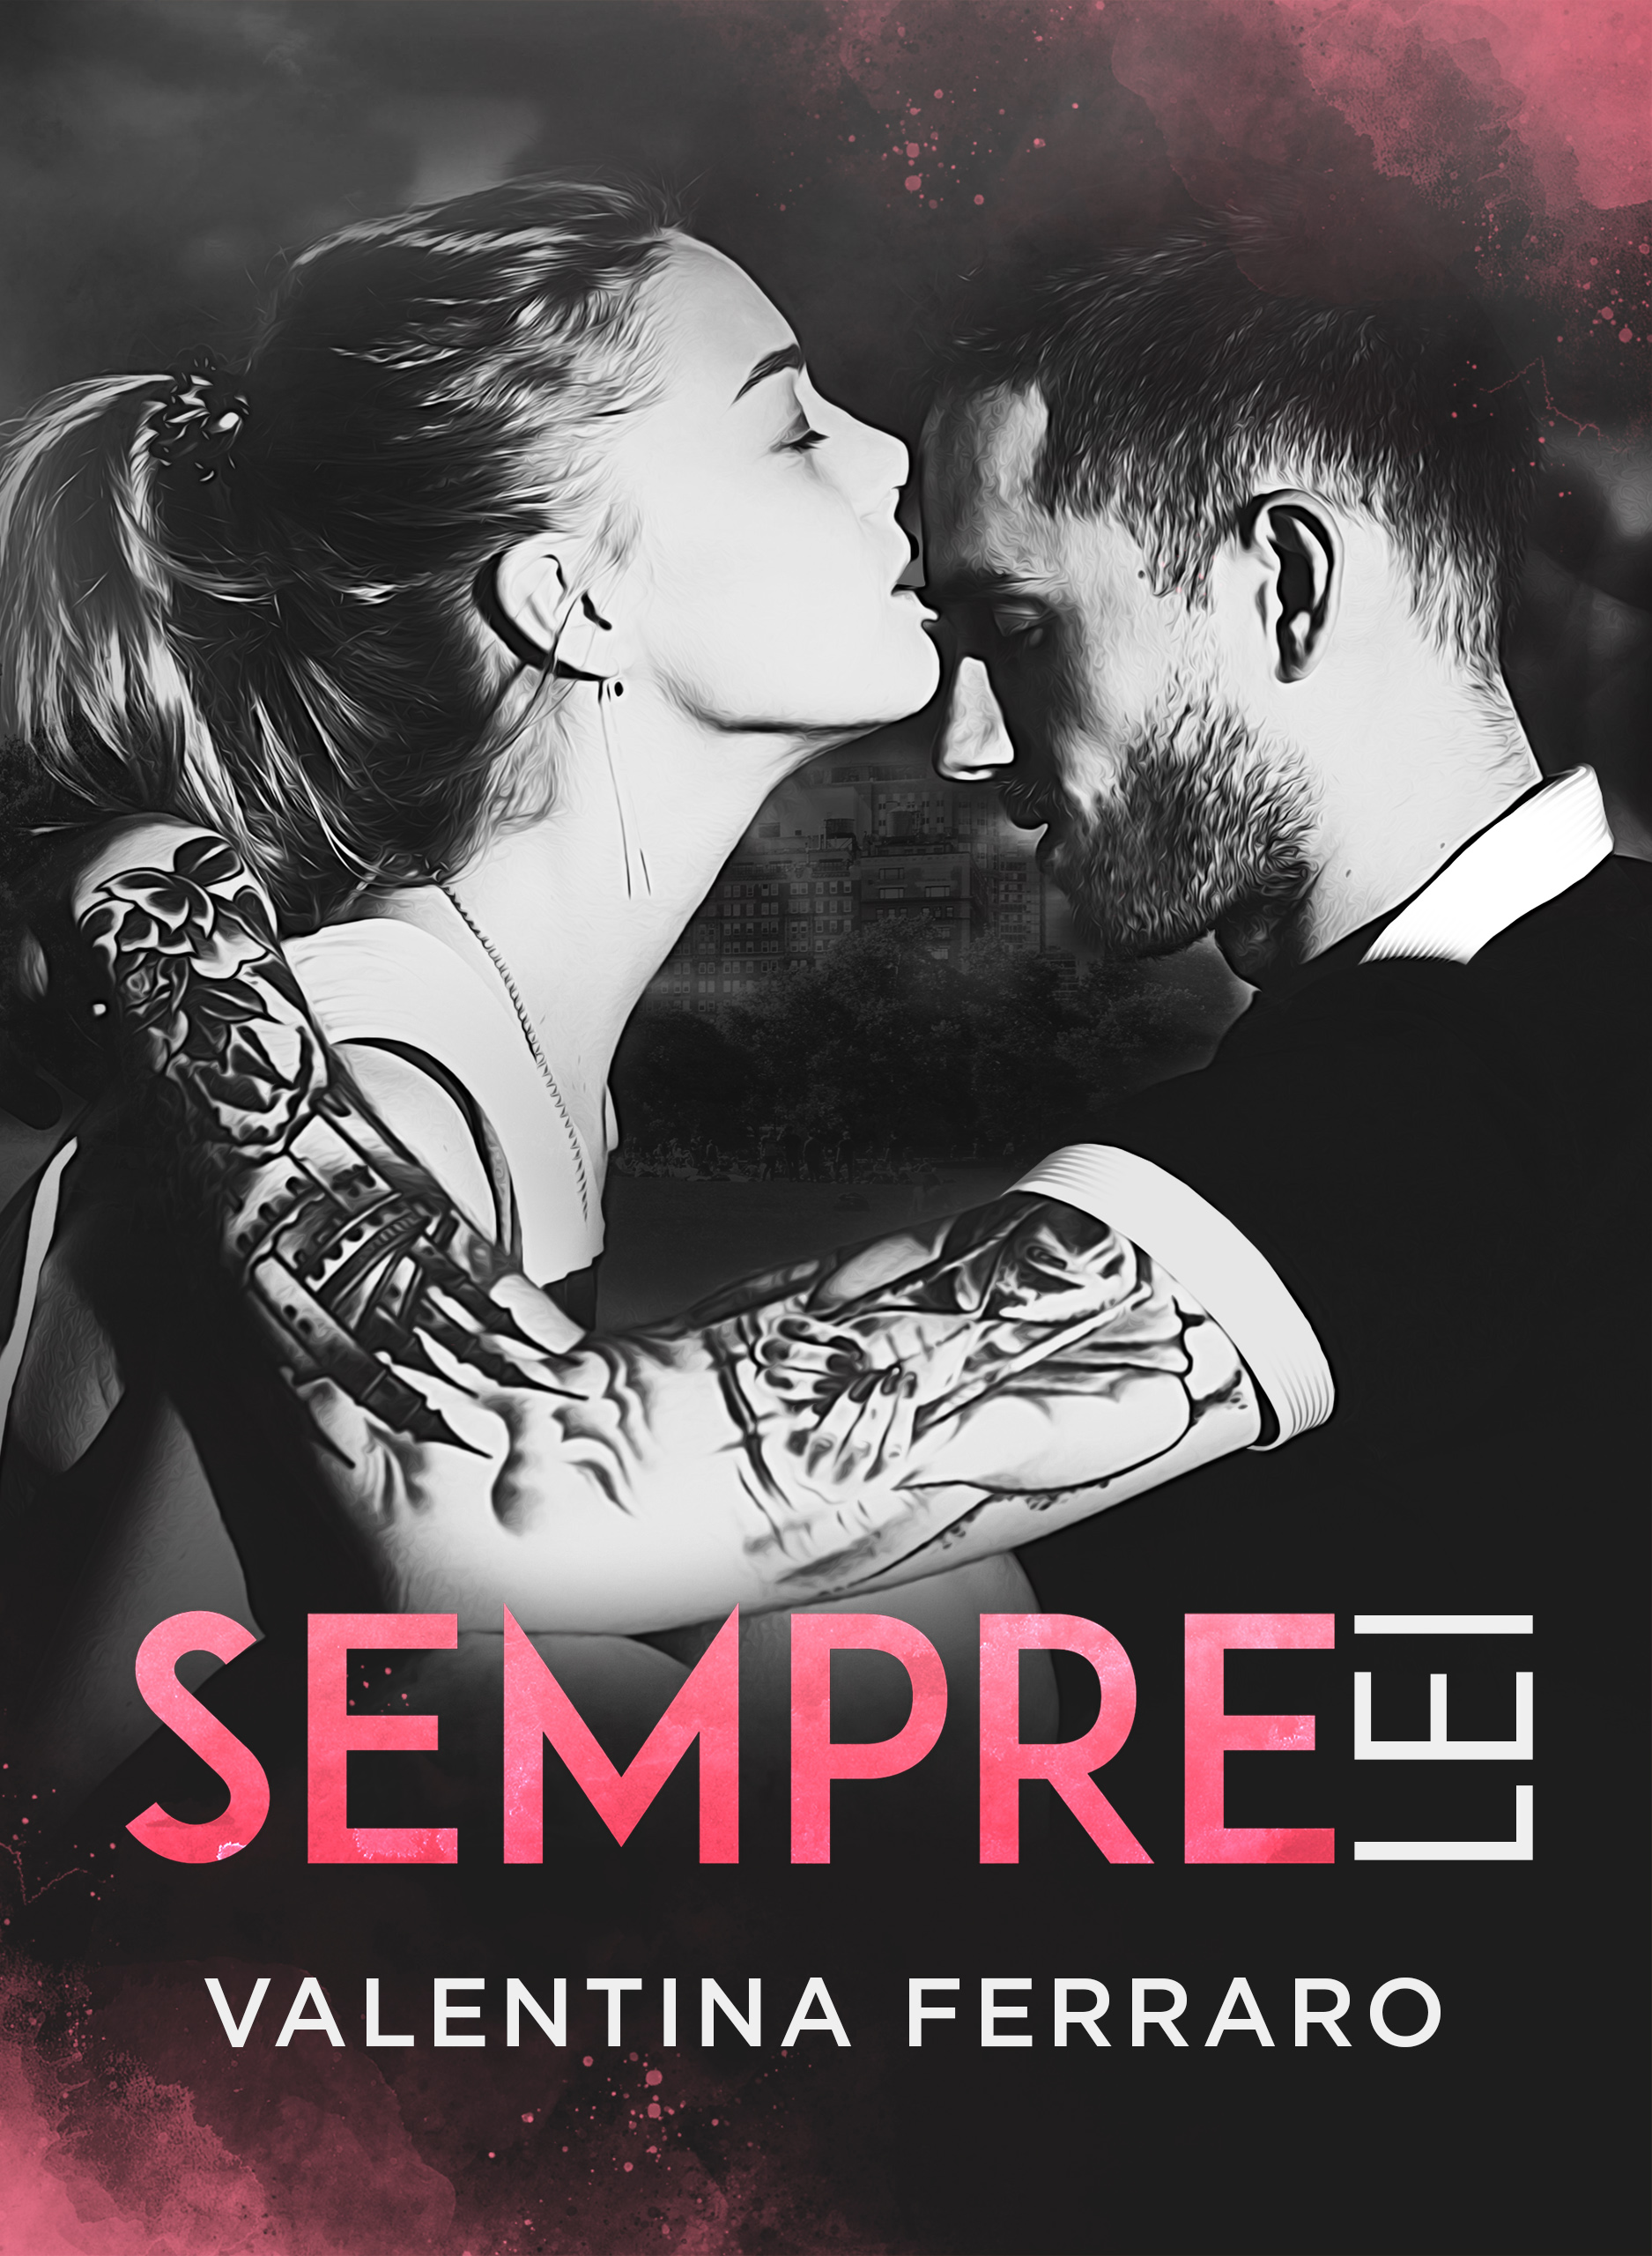 Cover Reveal: Sempre lei